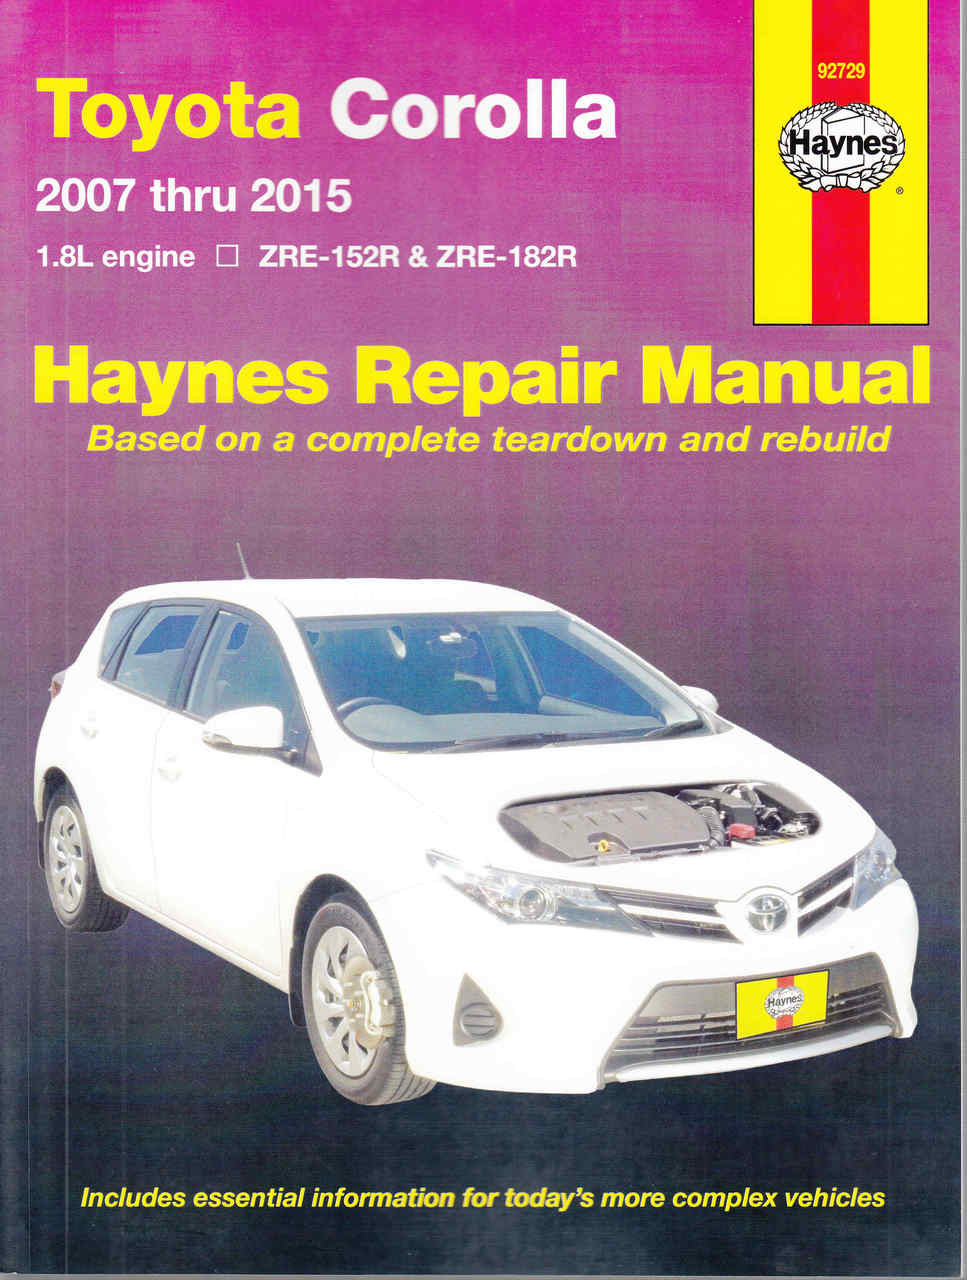 Toyota Corolla 18 Litre Engine Zre 152r 182r 2007 2015 1988 Ae92 Wiring Diagram Workshop